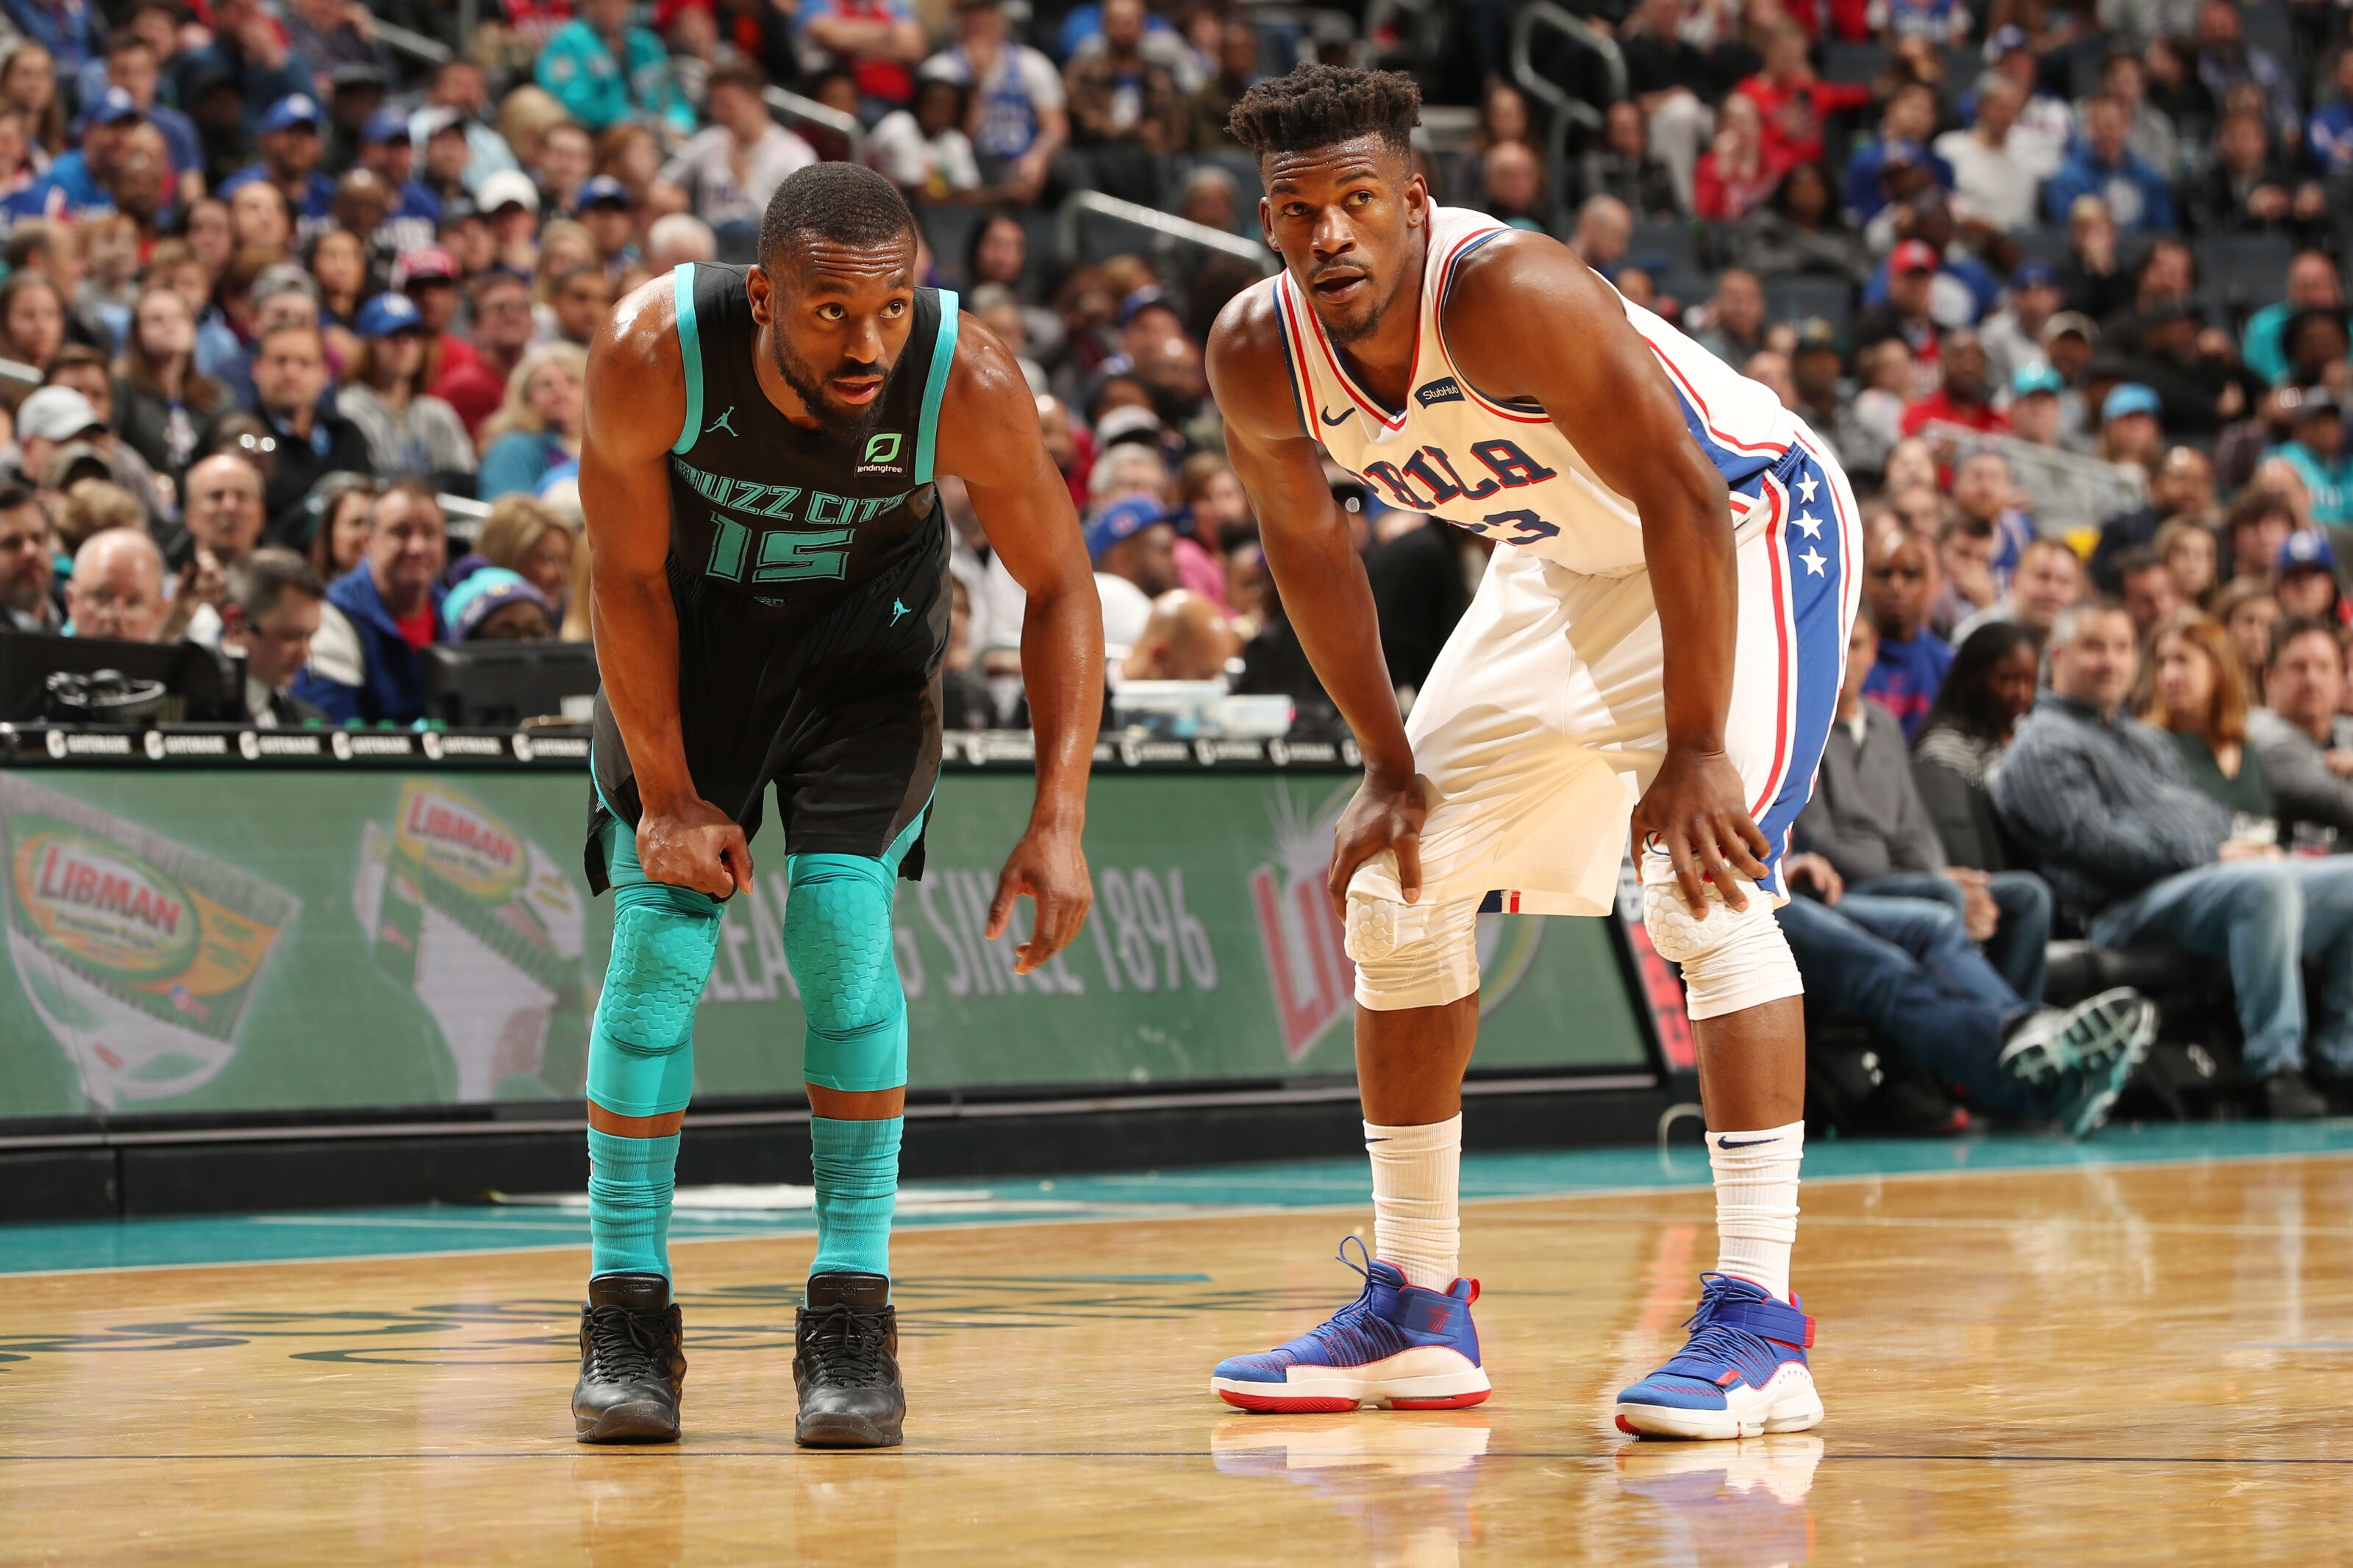 Charlotte Hornets fall at home to the Philadelphia 76ers, 118-114